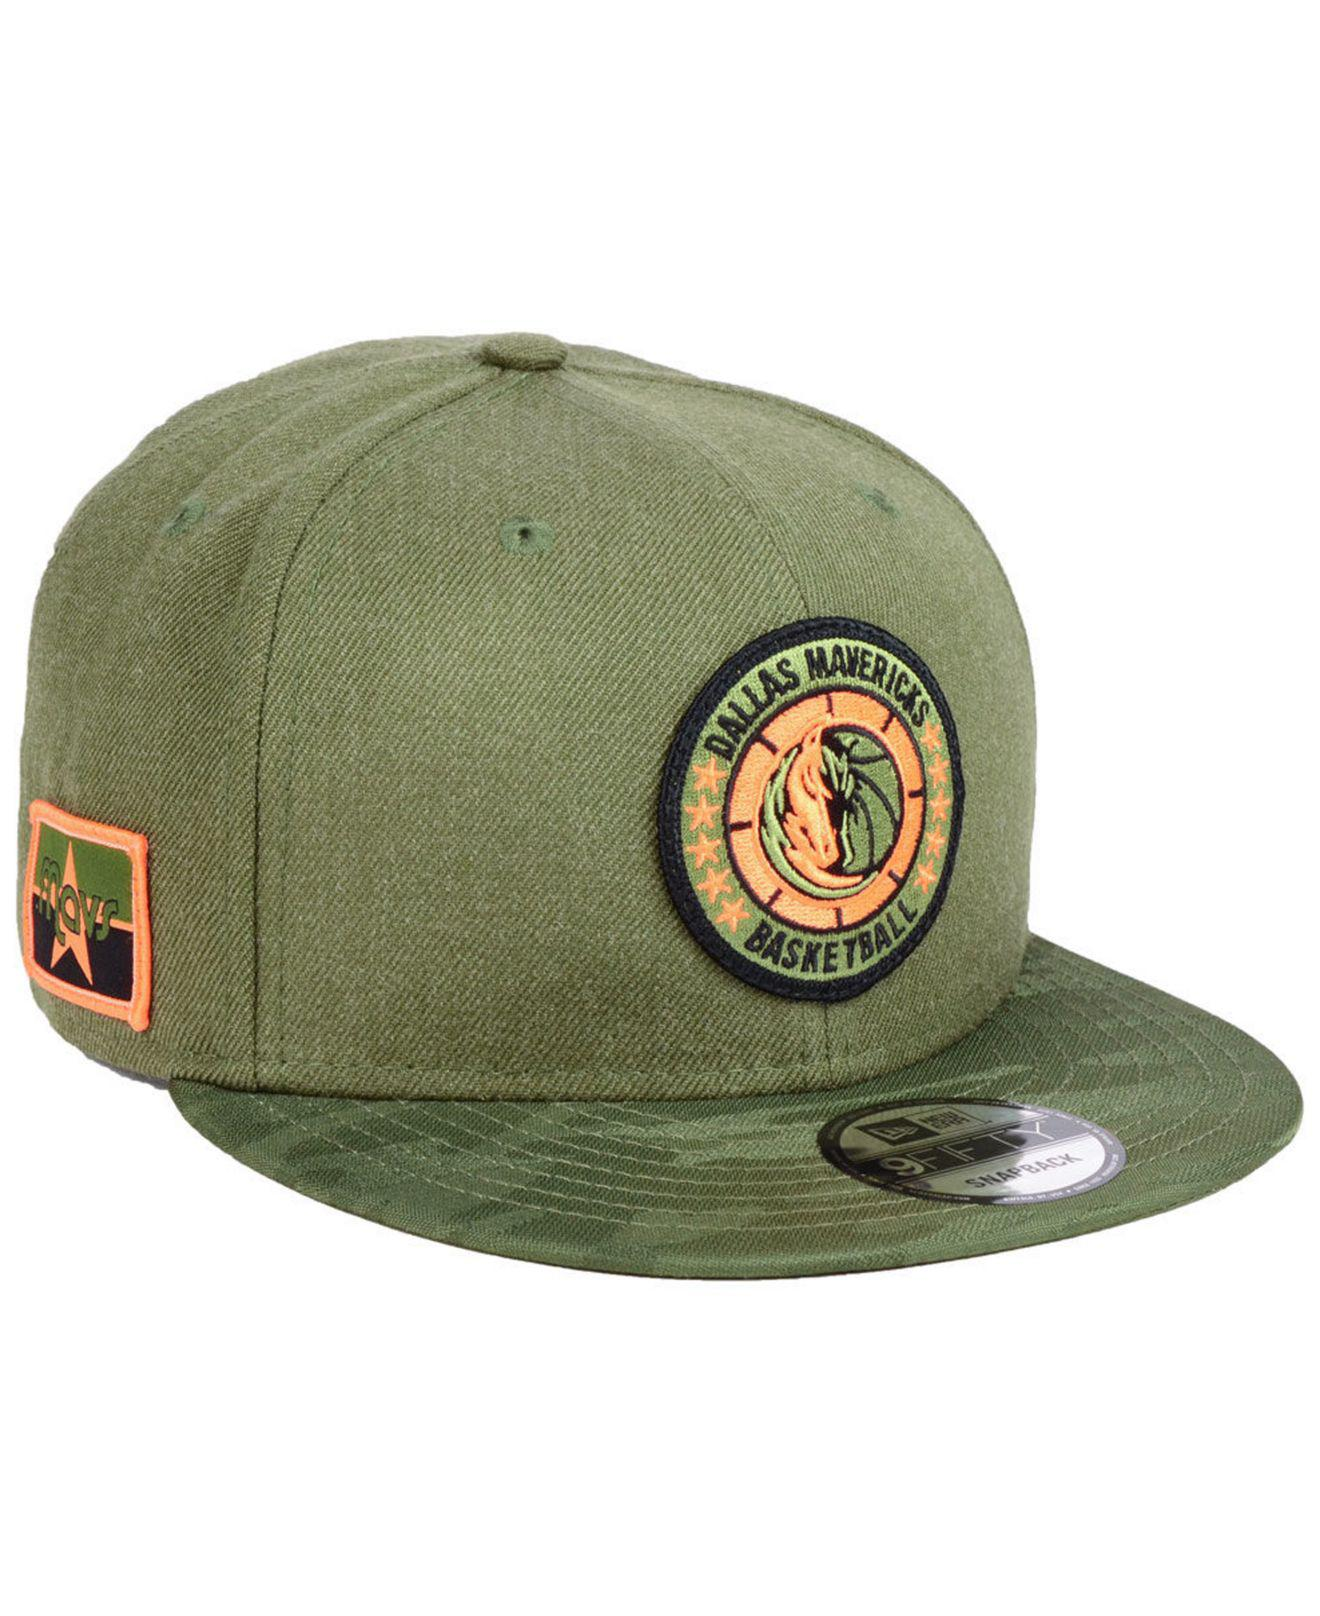 separation shoes 9727b 36d7d ... mitchell ness nba orange gaze snapback 9de03 133e8  where can i buy  ktz. mens green dallas mavericks tip off 9fifty snapback cap 9a321